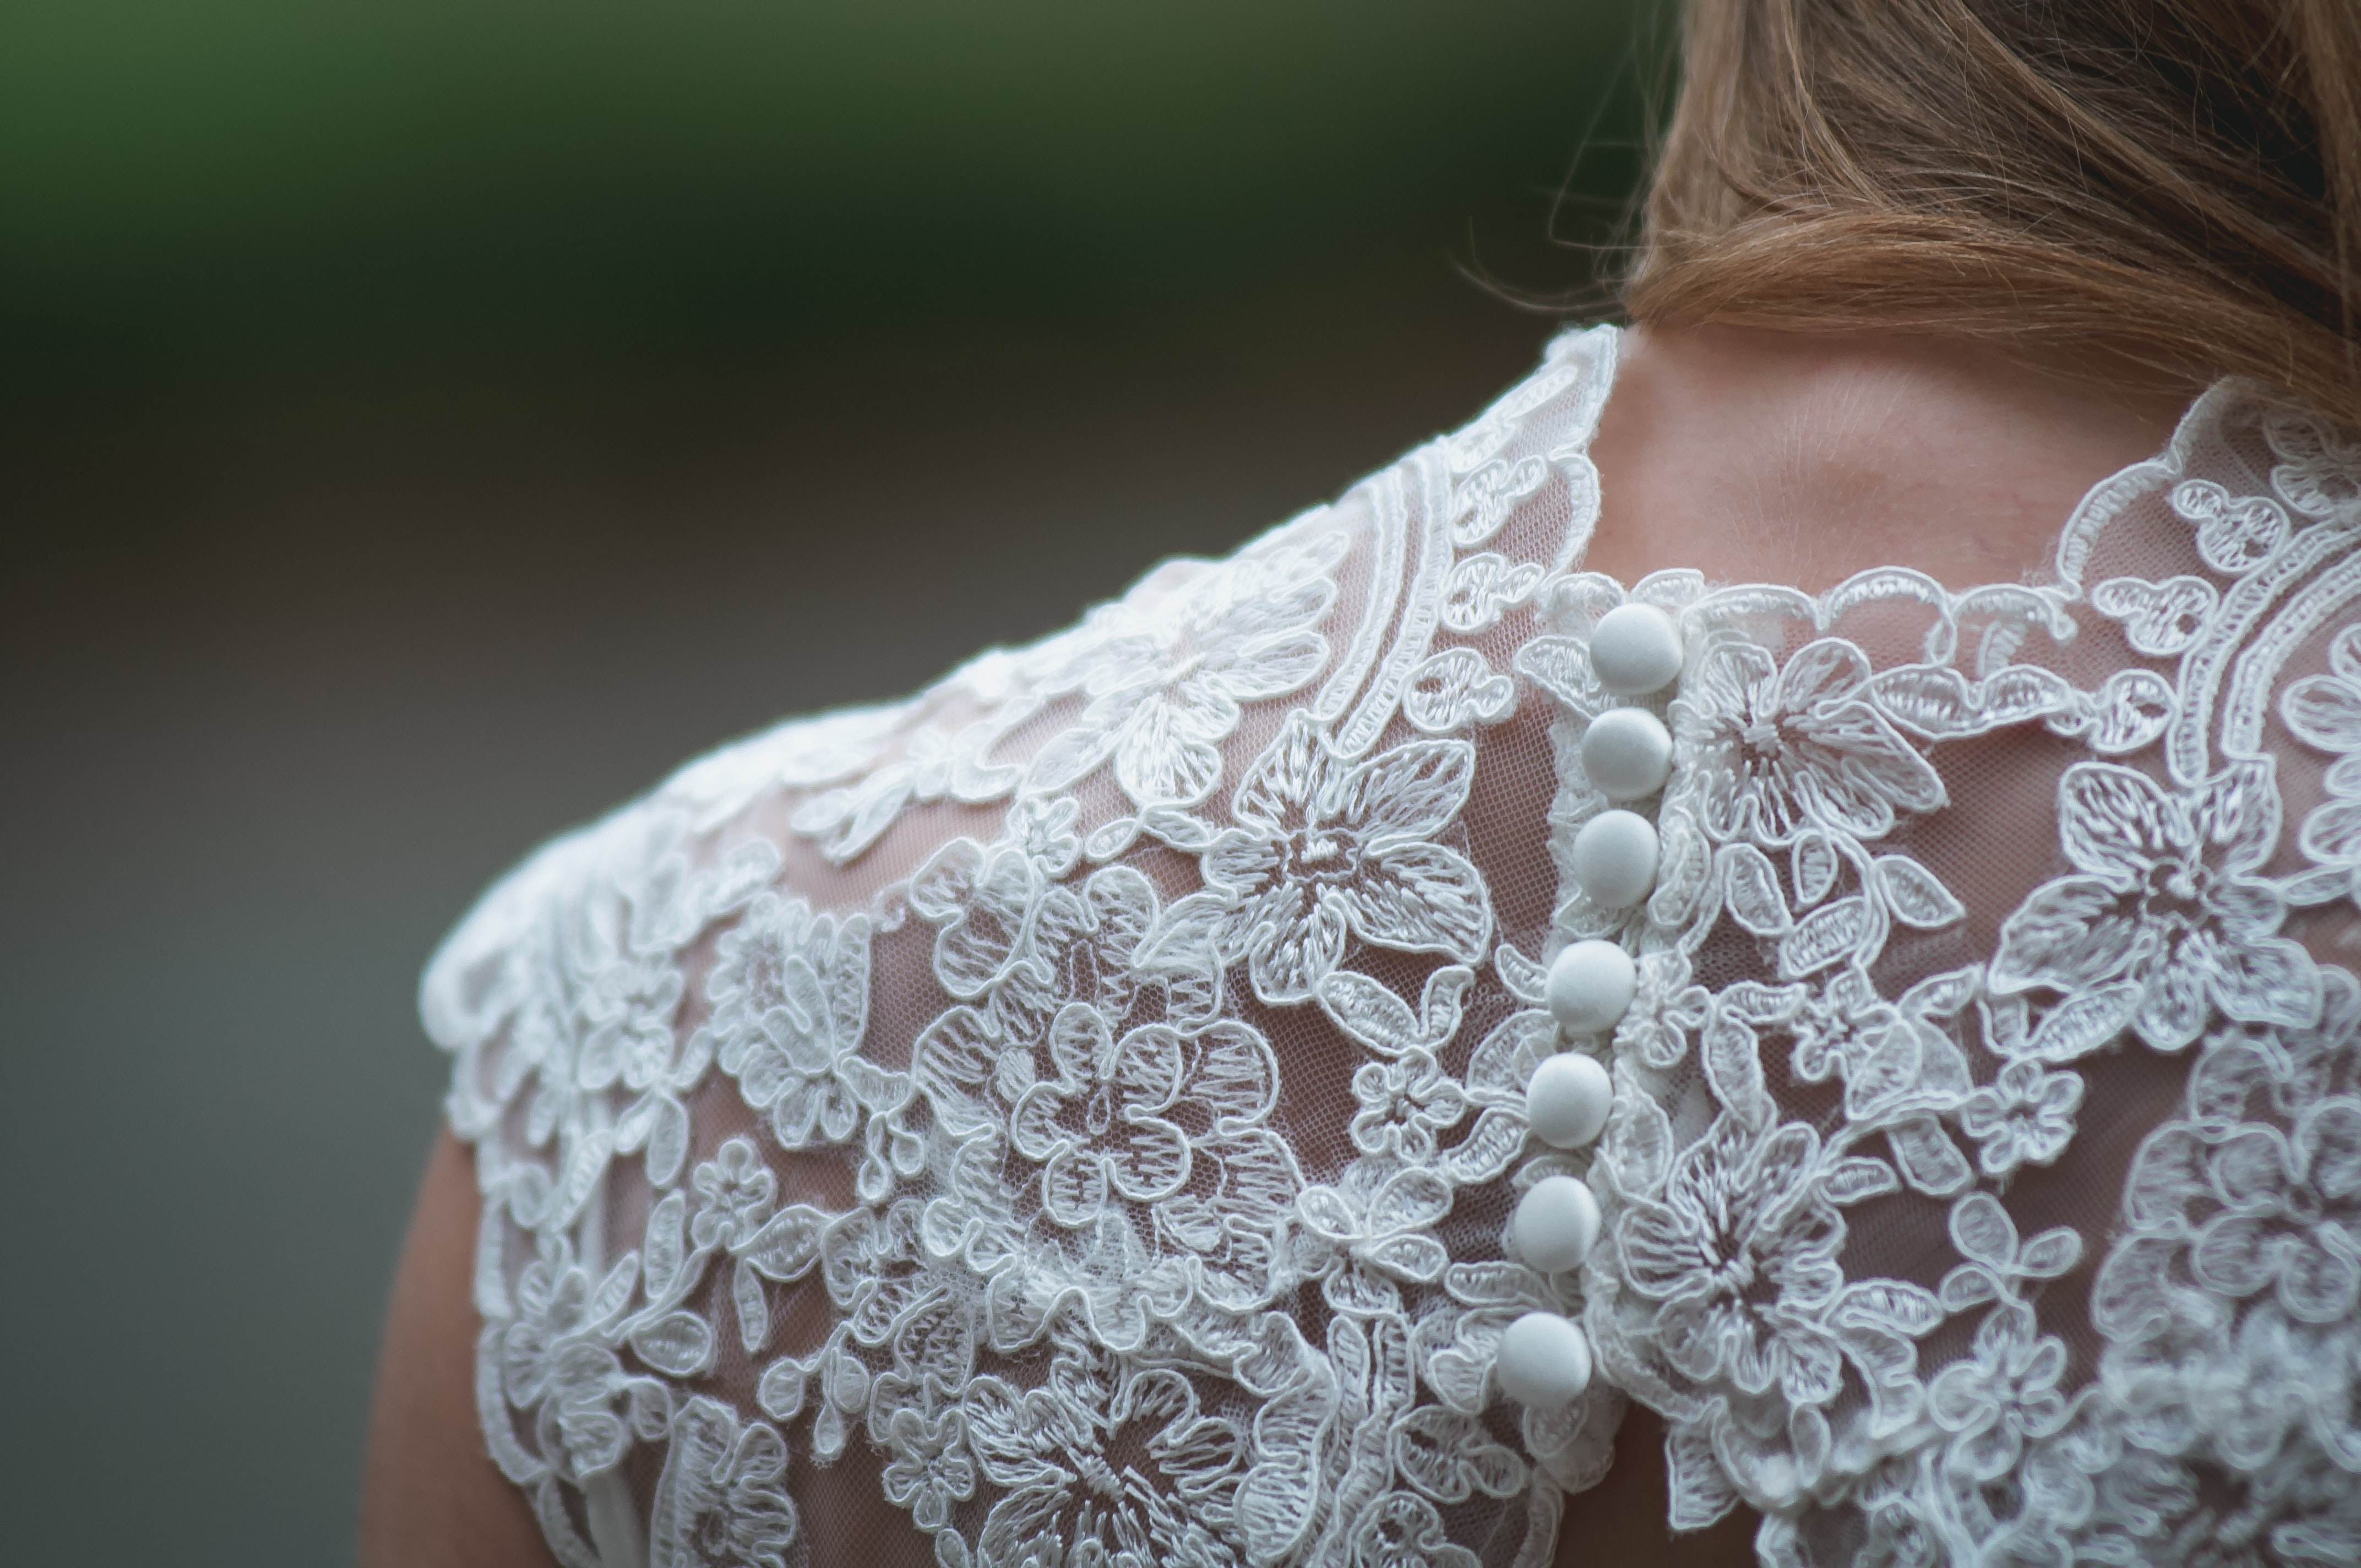 Image shows the details on the back of a Brides dress showing lace and buttons